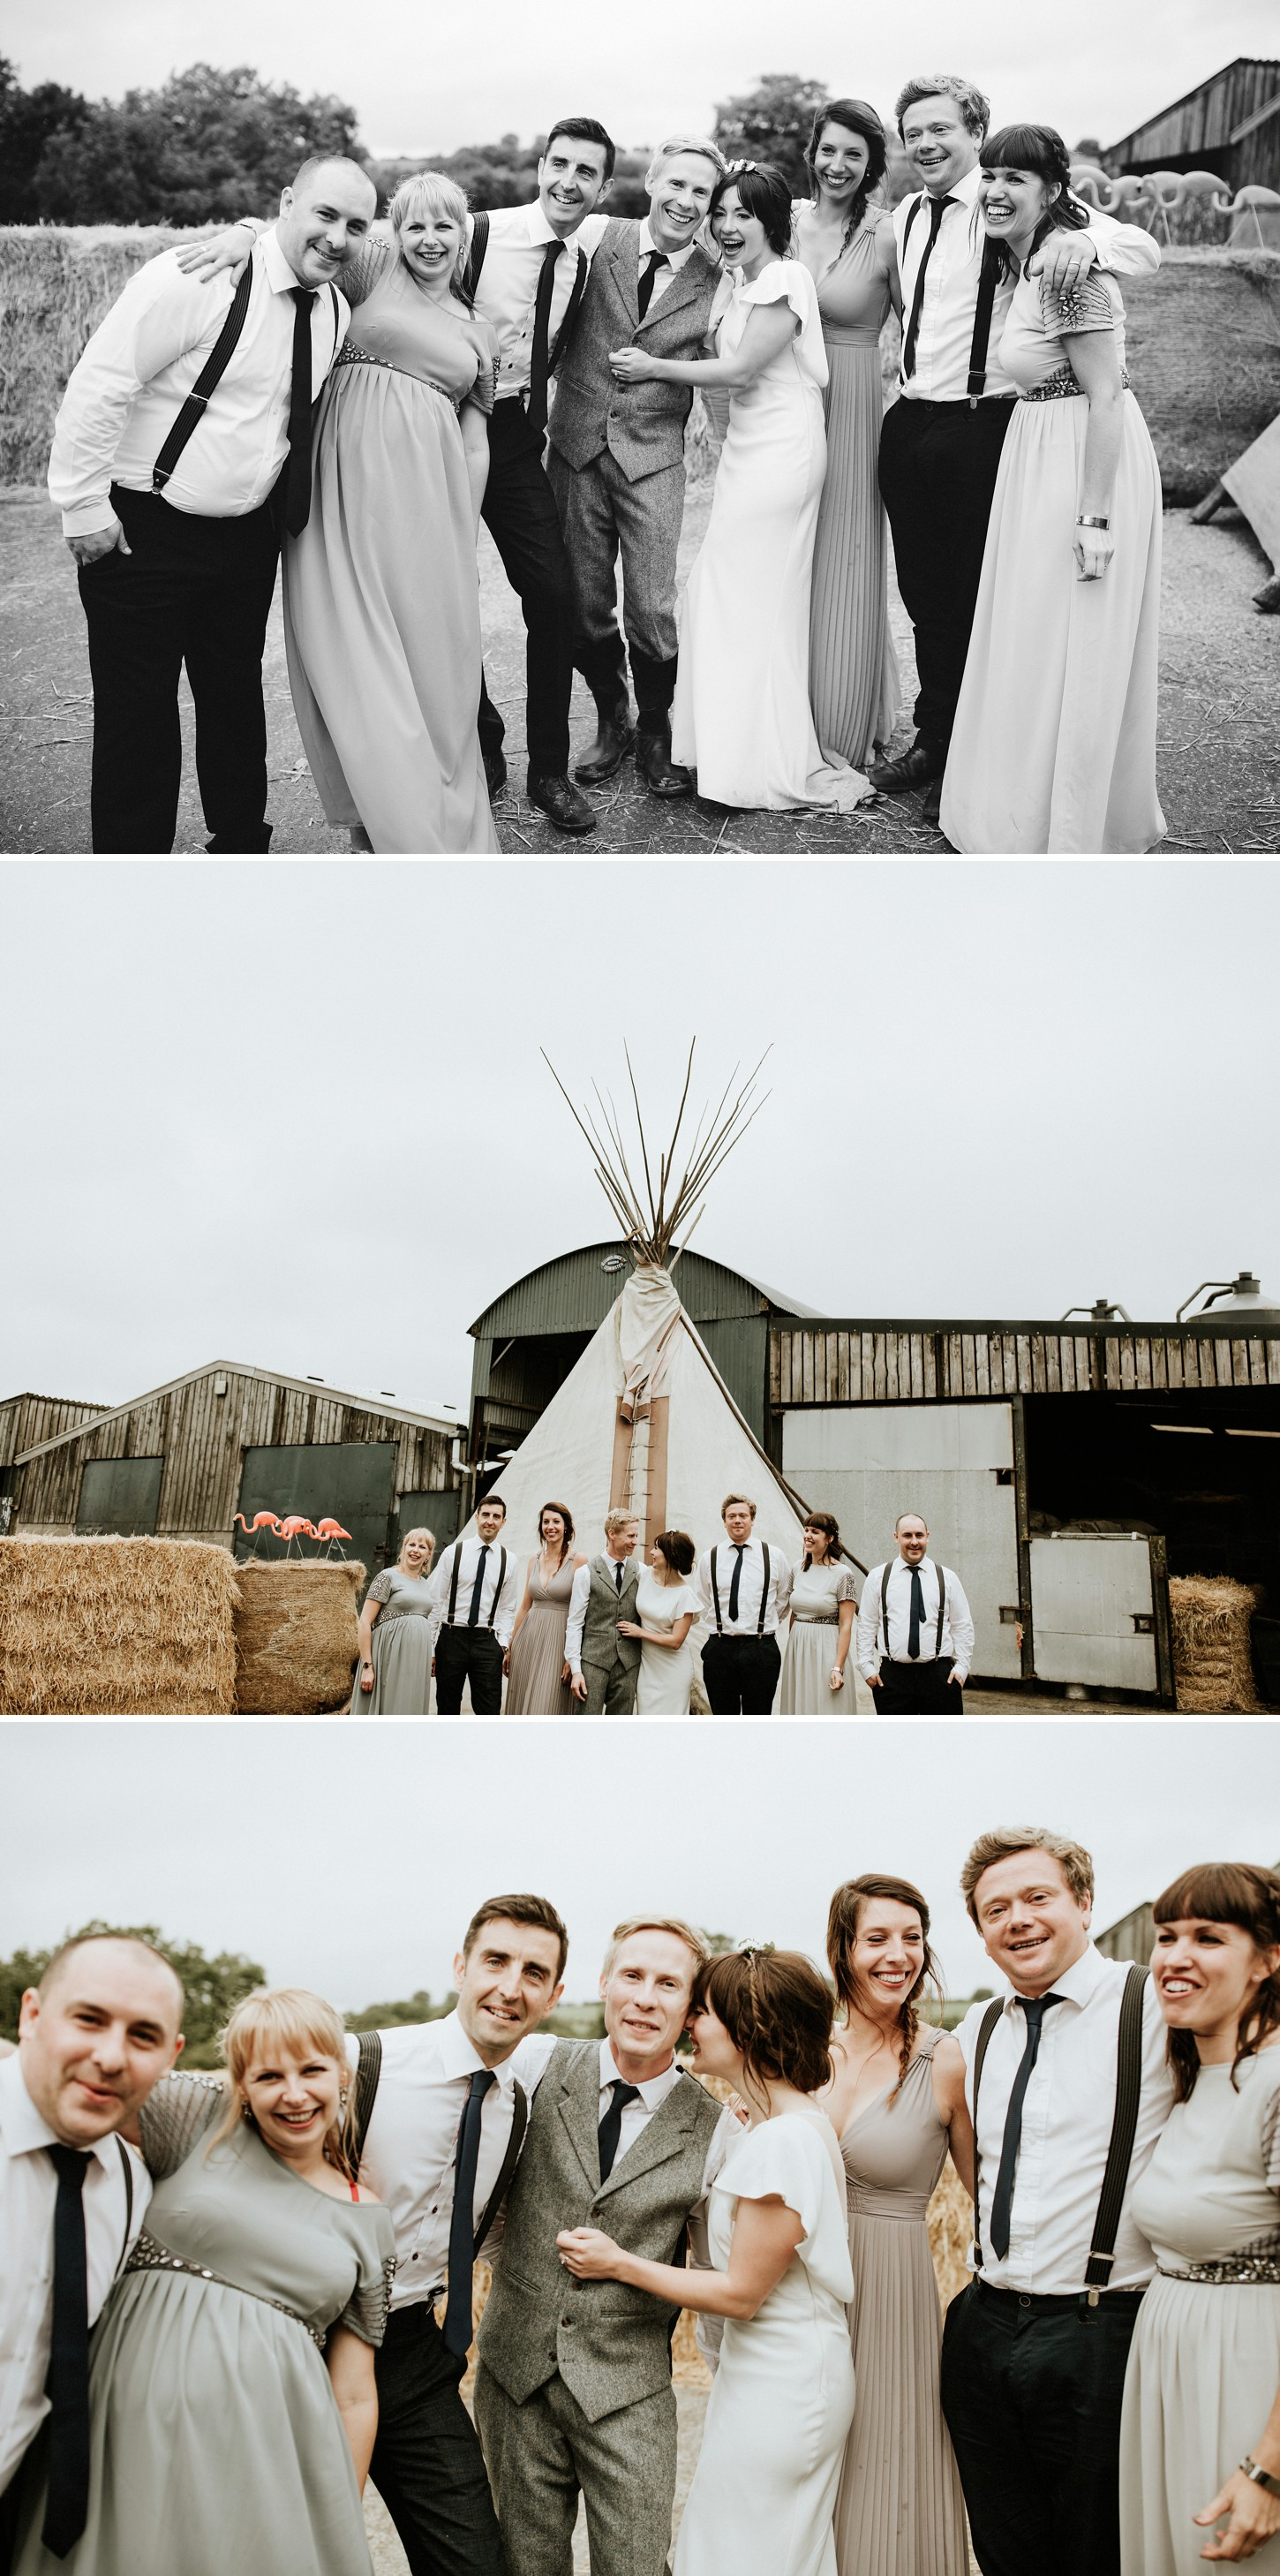 Dolau-Sheep-Farm-Wedding-Wales-United-Kingdom-052